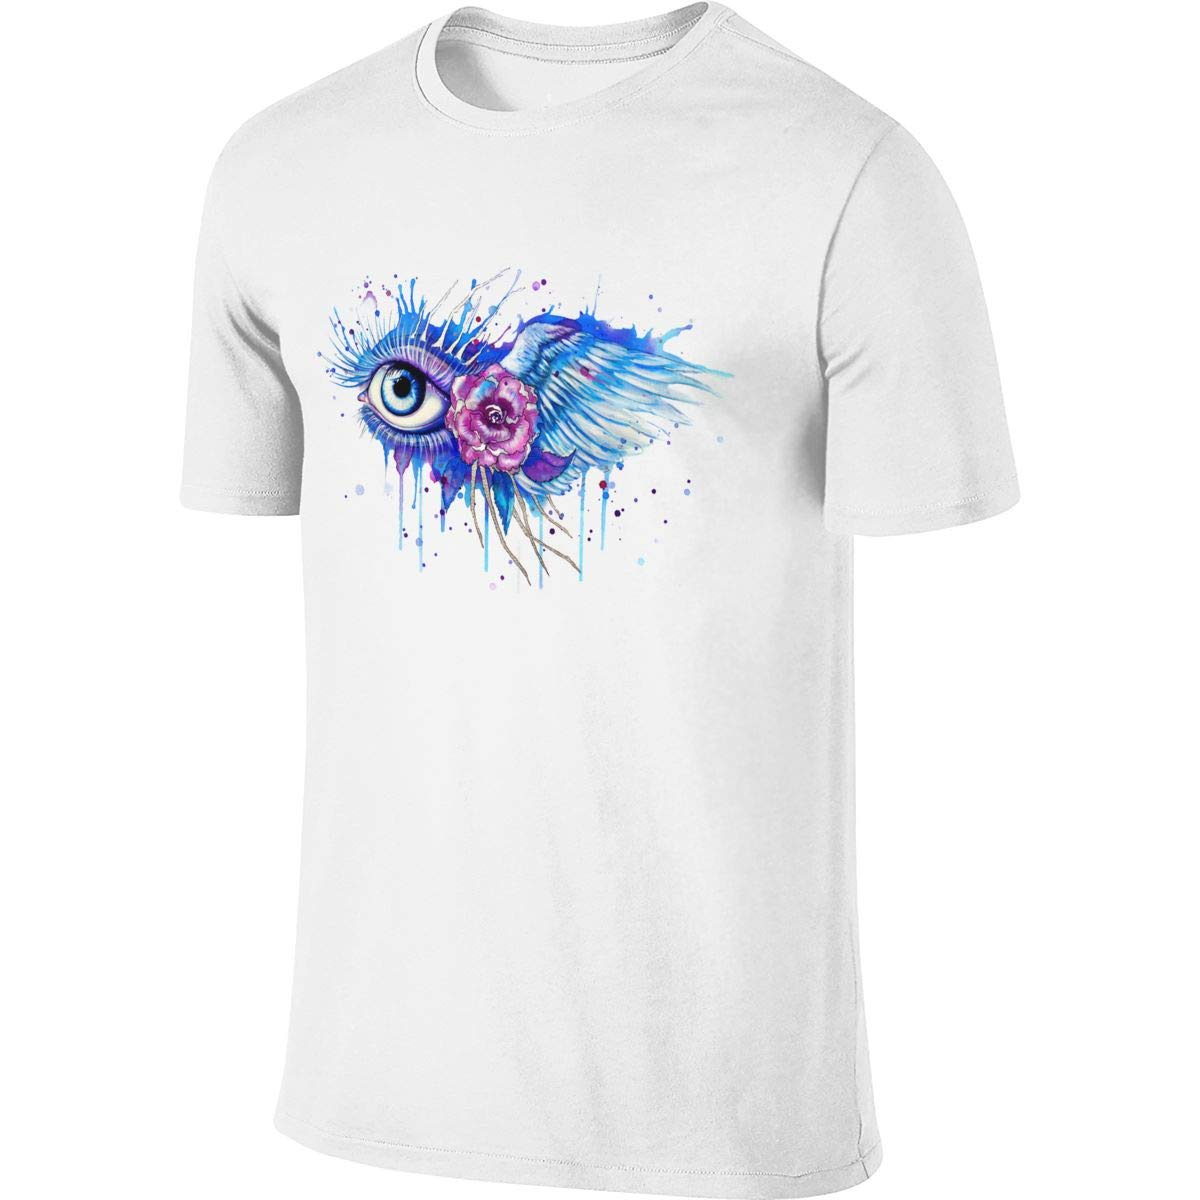 Matreus Design Breathable Top I Can See Heaven T Shirt for Mens